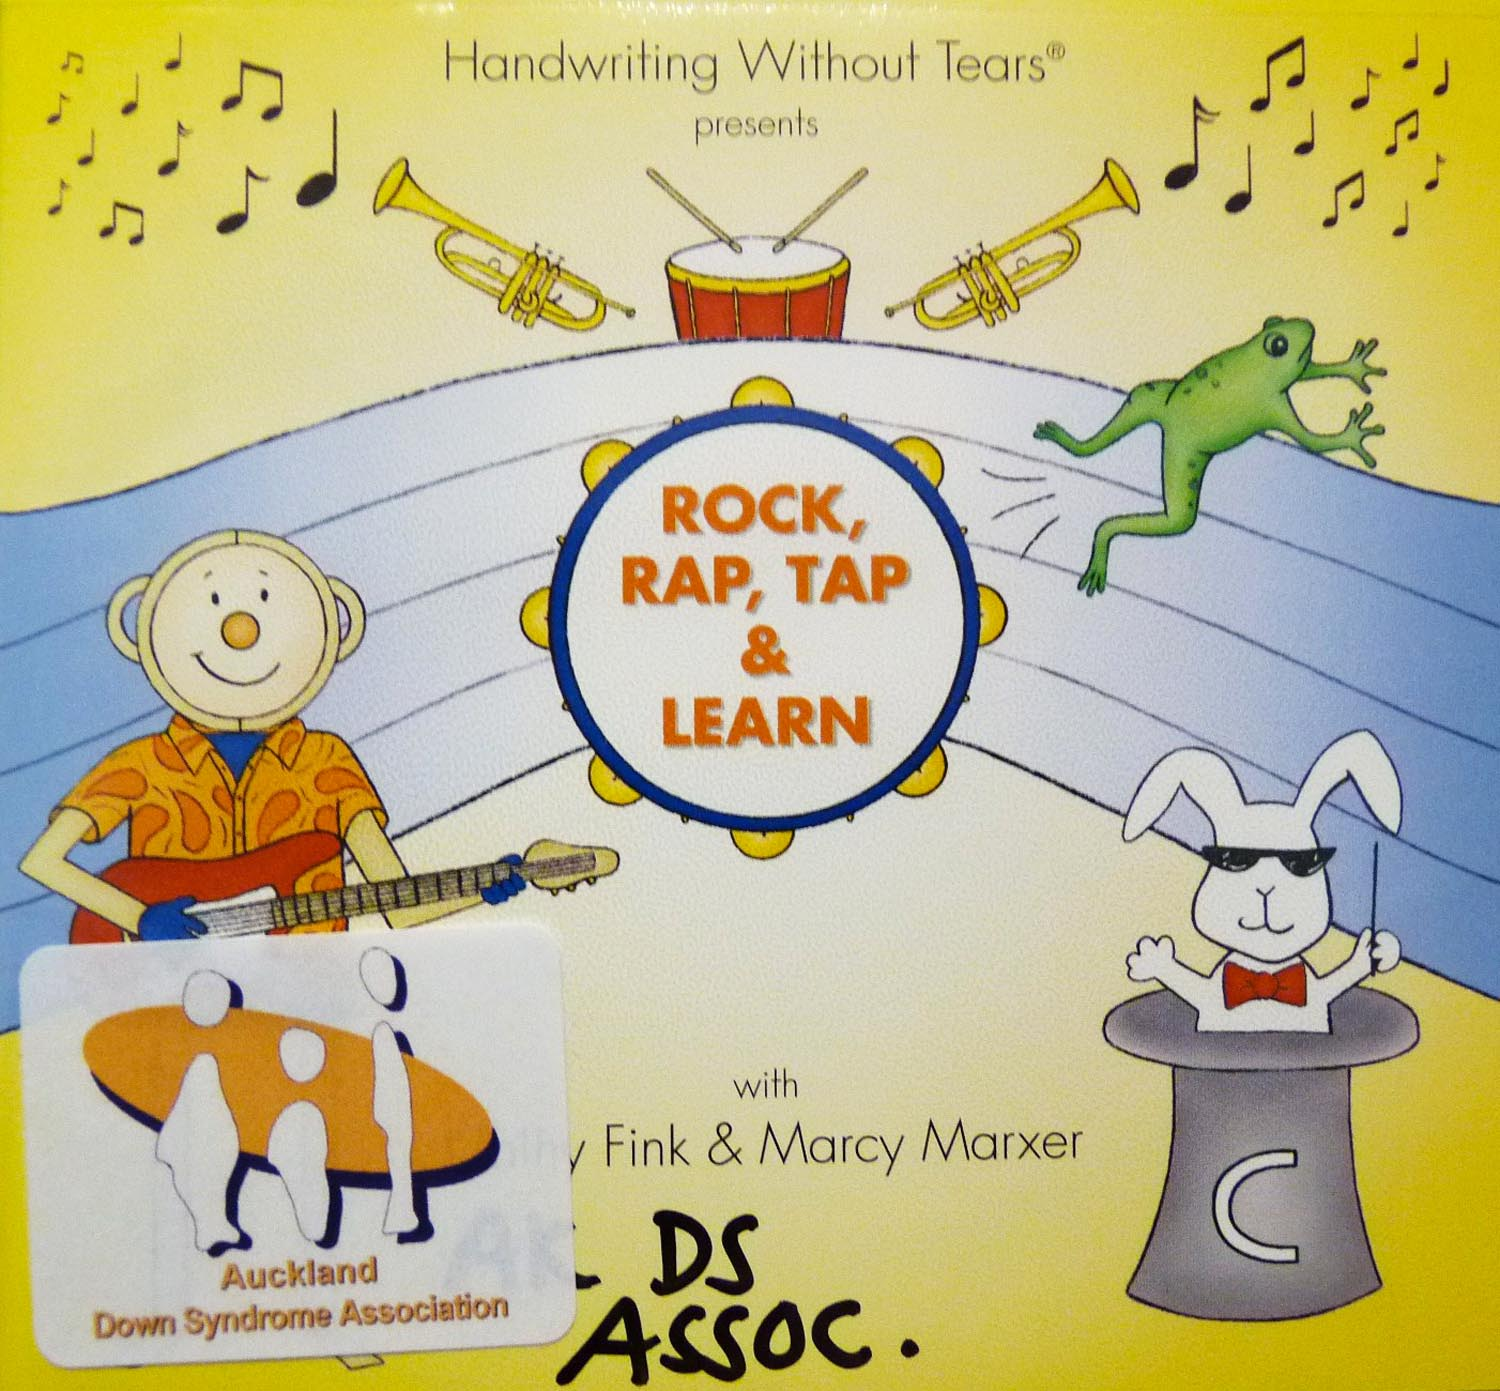 Mat Man - Rock, Rap, Tap and Learn CD Pack - Hand Writing Without Tears Image